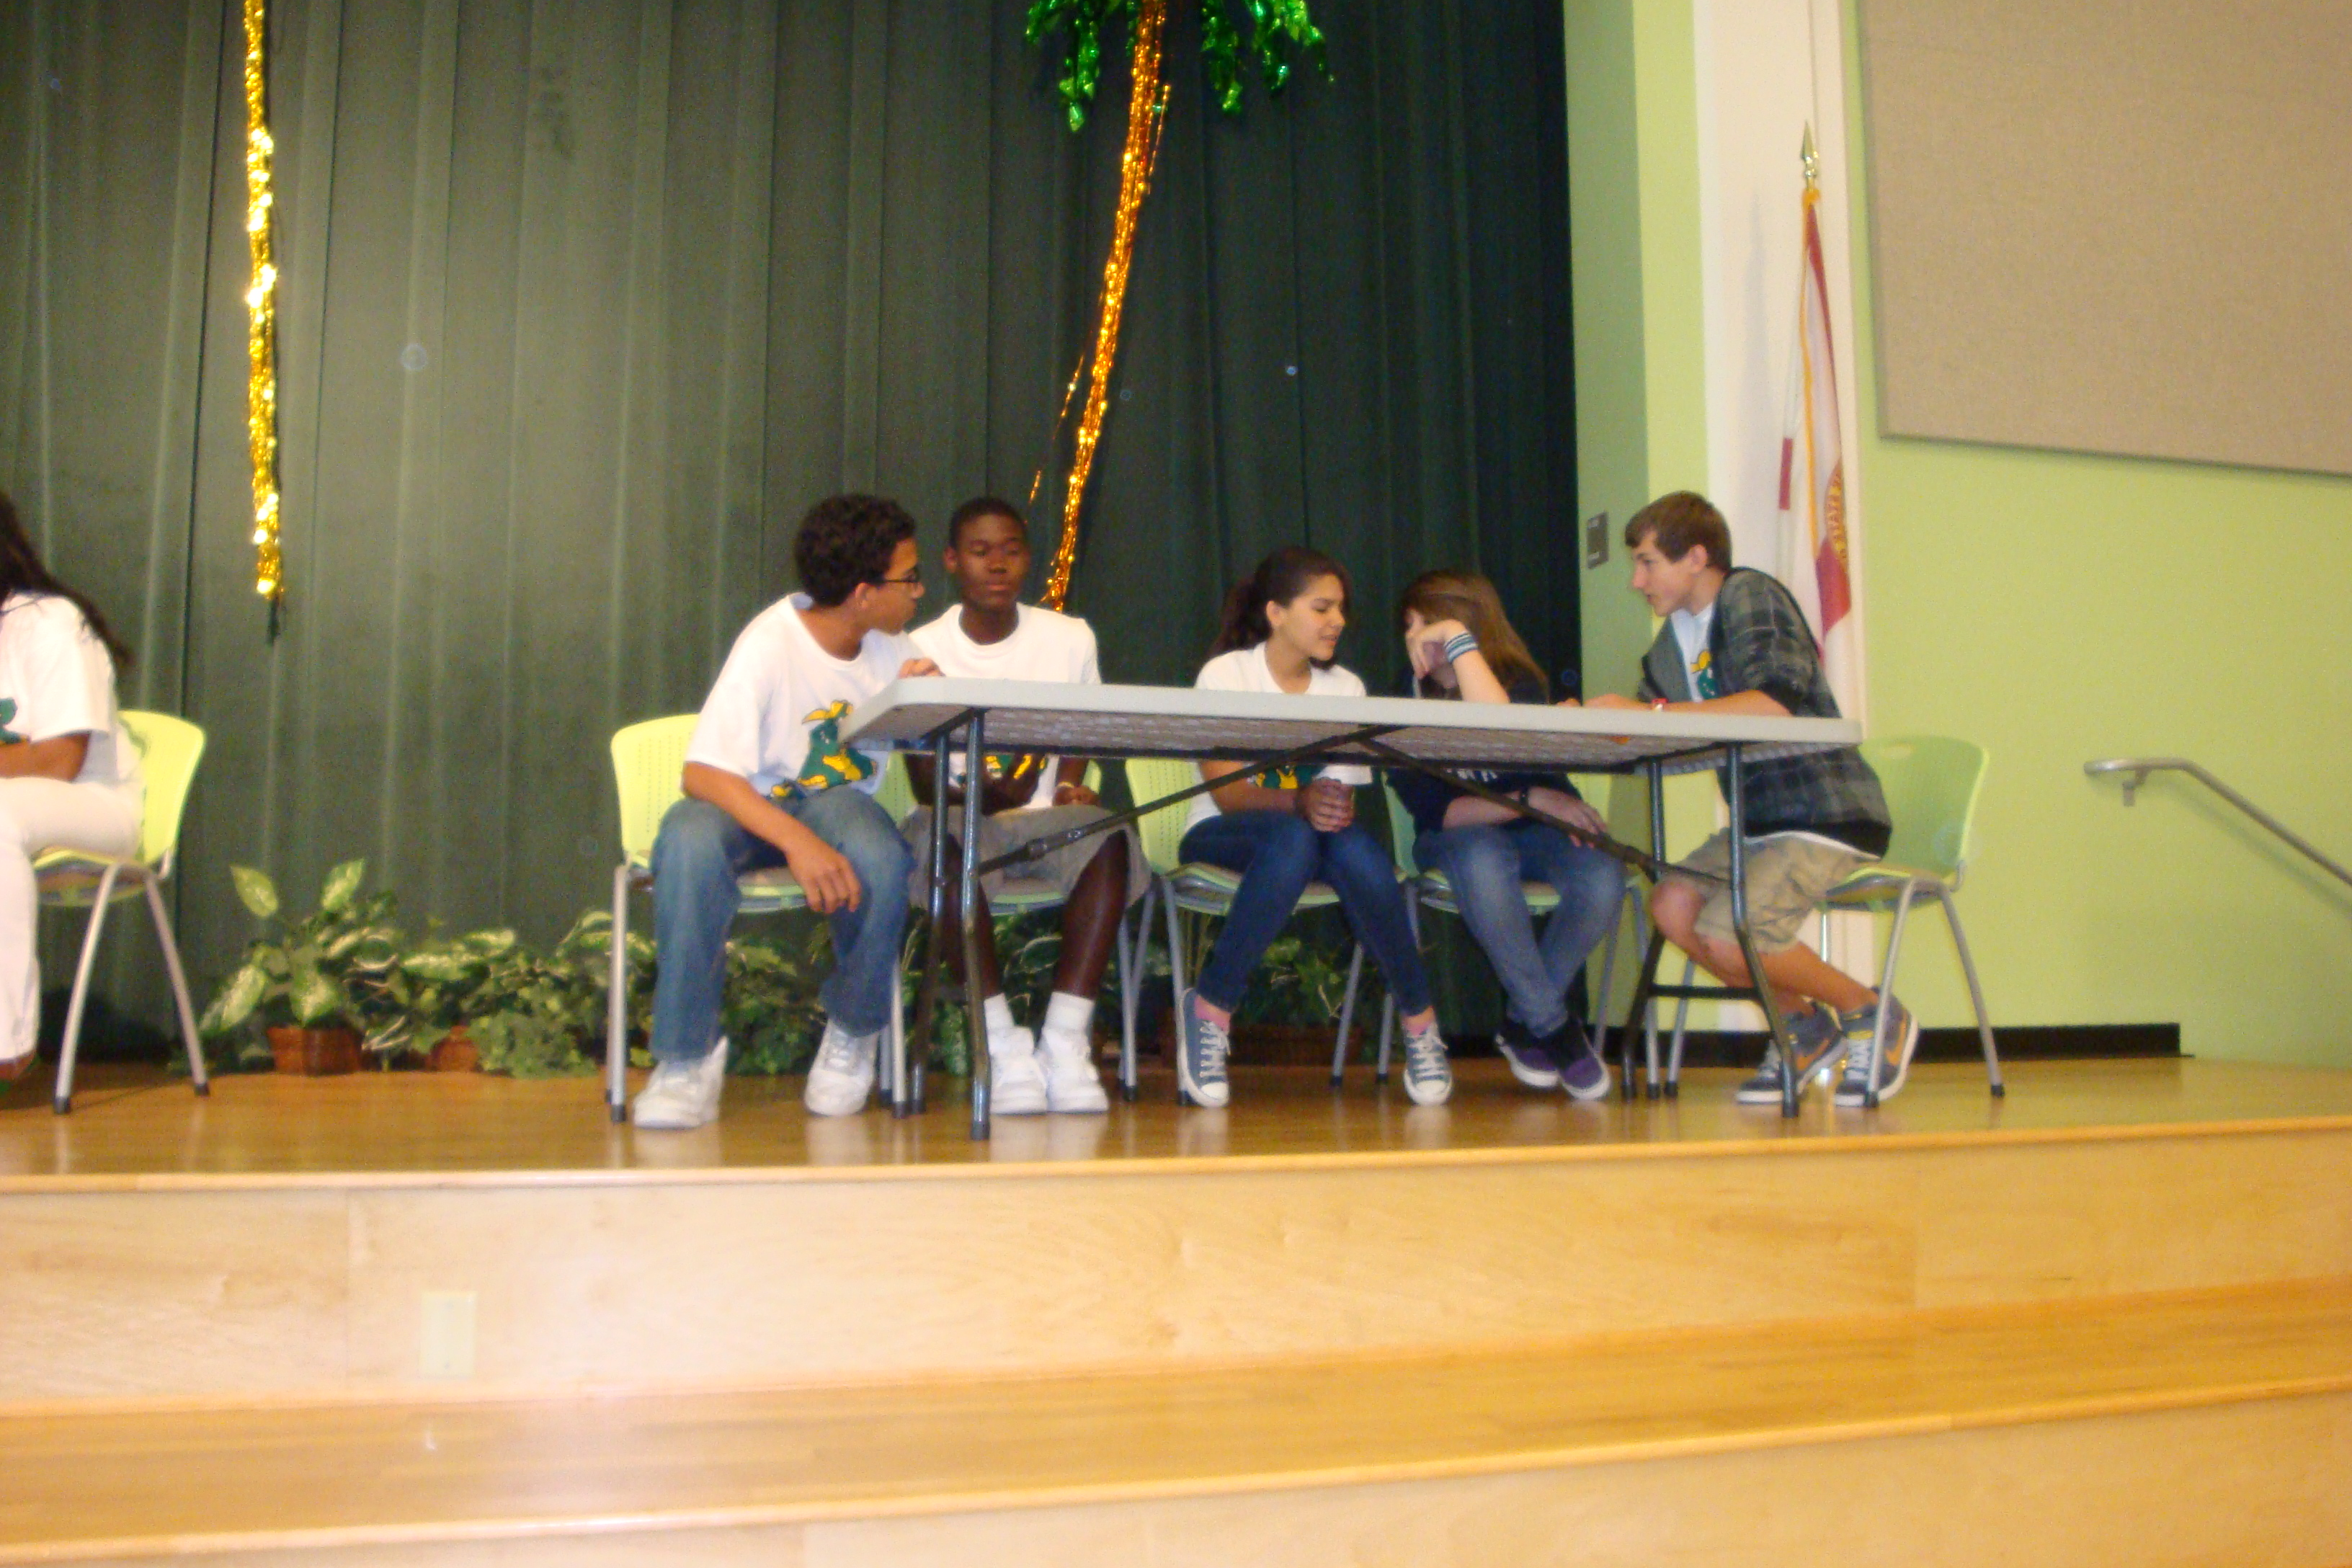 There's a 'Battle of the Books' in middle school at Allapattah Flats K8